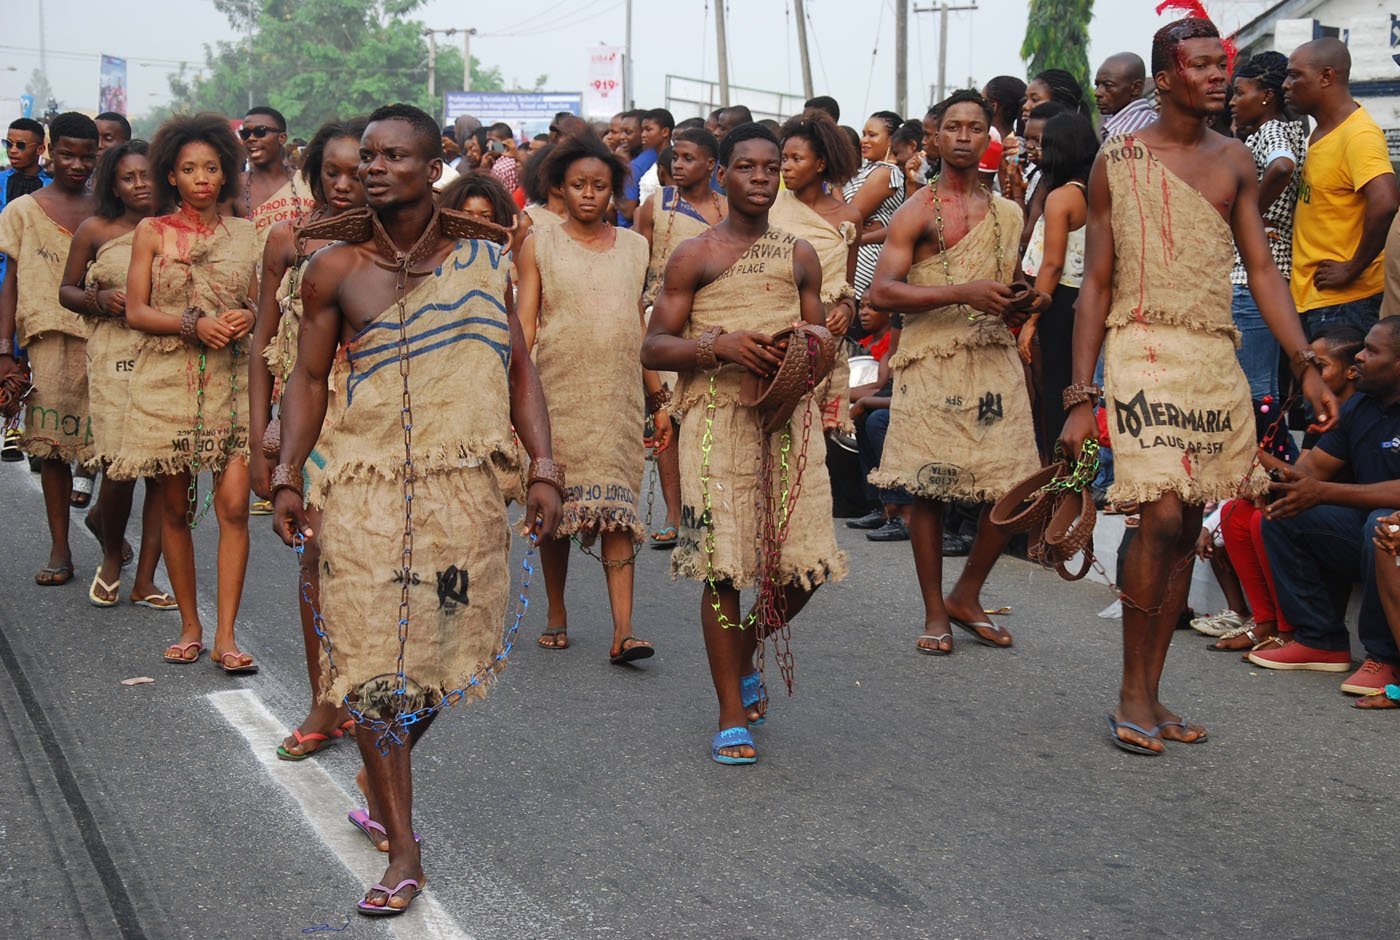 Members of Bayside Band wearing a Costume Depicting Slavery during the Main Event of the 2017 Carnival Calabar in Cross River State Yesterday. Photo: Nwankpa Chijioke